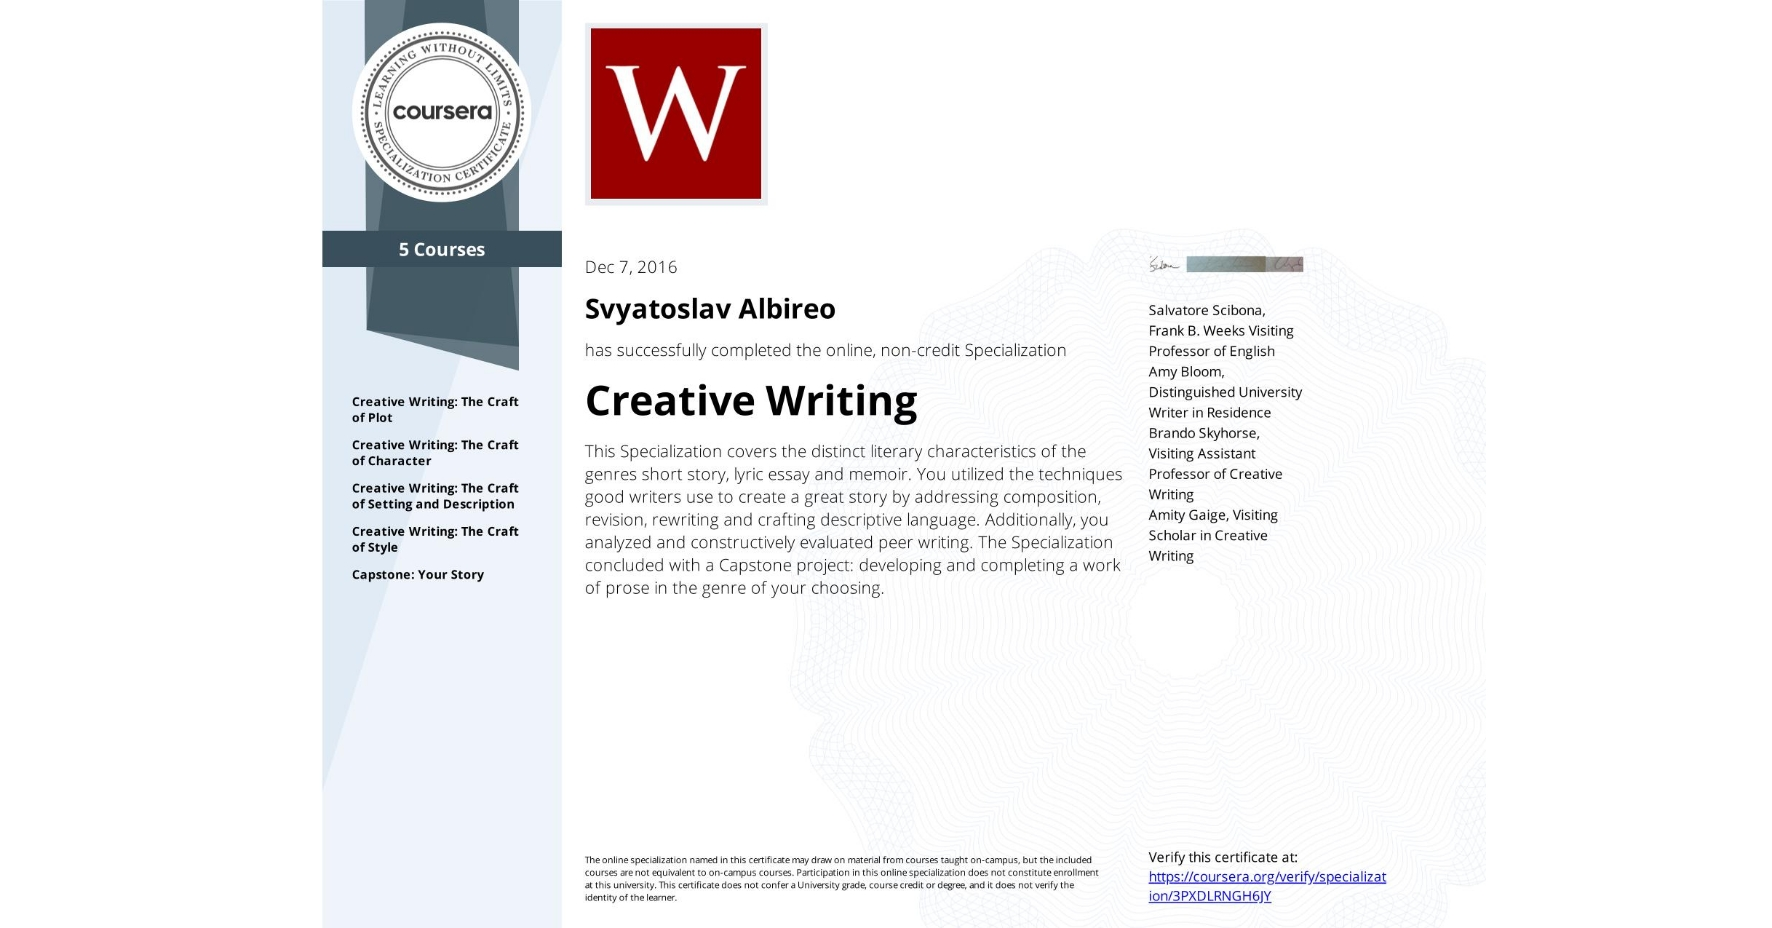 View certificate for Svyatoslav Albireo, Creative Writing, offered through Coursera. This Specialization covers the distinct literary characteristics of the genres short story, lyric essay and memoir. You utilized the techniques good writers use to create a great story by addressing composition, revision, rewriting and crafting descriptive language. Additionally, you analyzed and constructively evaluated peer writing. The Specialization concluded with a Capstone project: developing and completing a work of prose in the genre of your choosing.